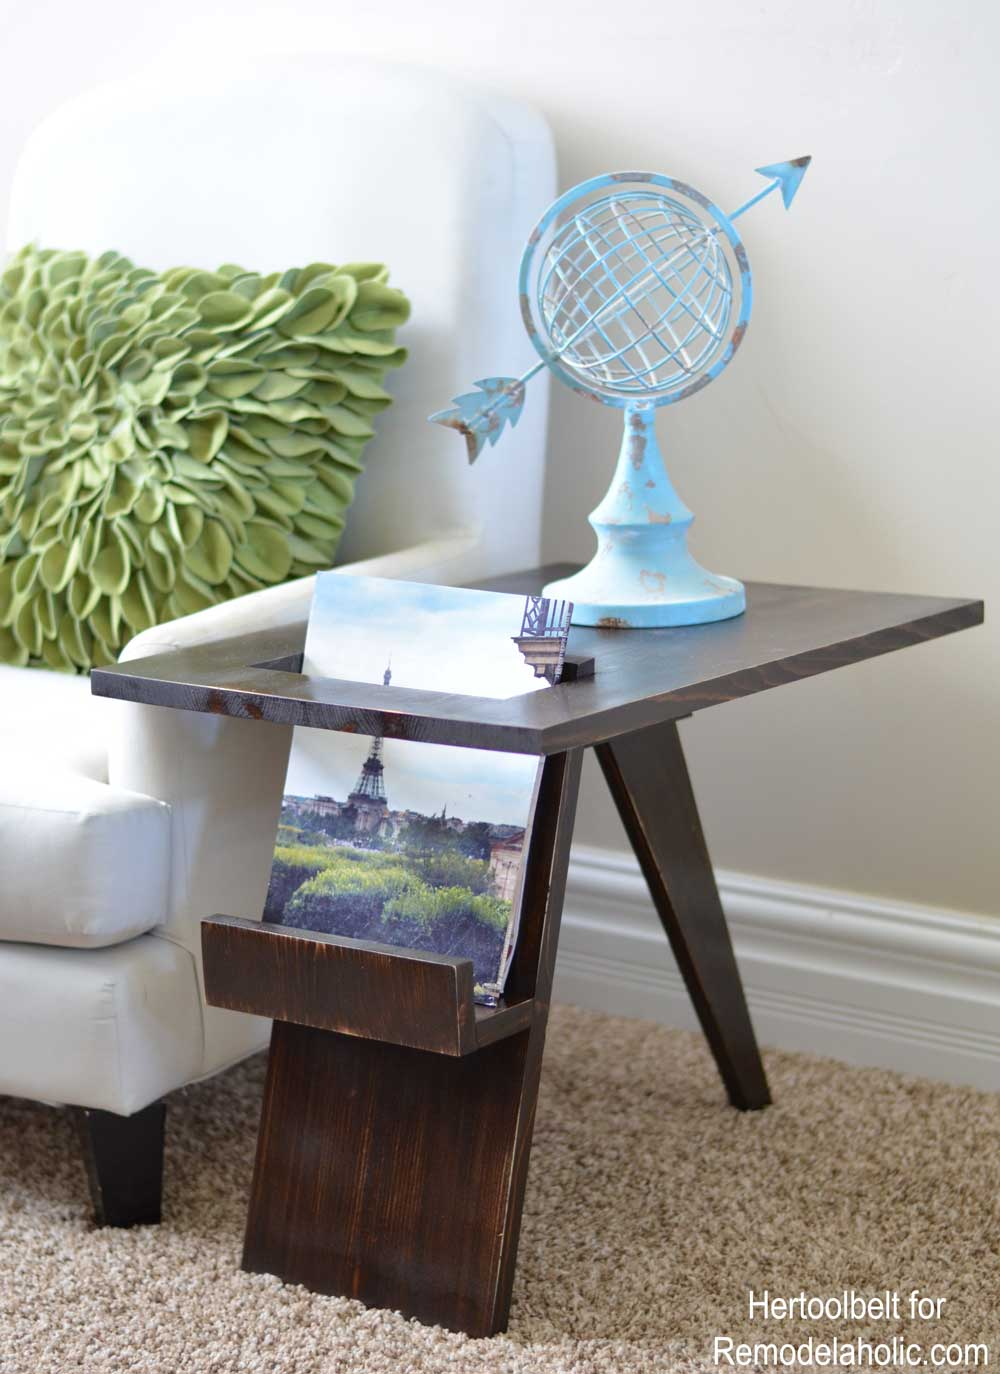 Remodelaholic Build A DIY MidCentury Modern Side Table And - How to build a side table